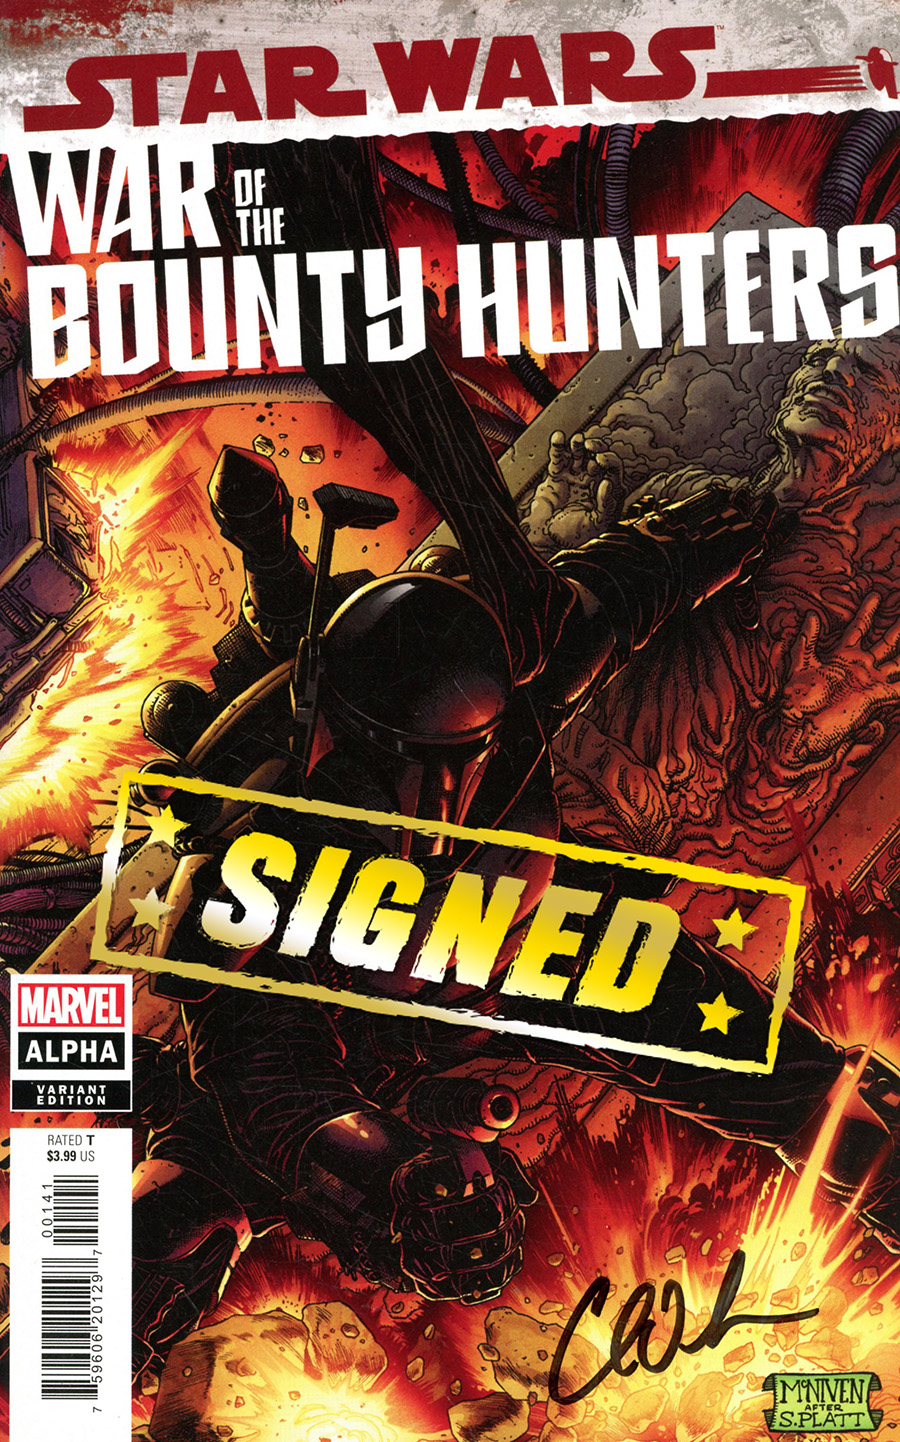 Star Wars War Of The Bounty Hunters Alpha #1 (One Shot) Cover M Incentive Steve McNiven Boba Fett Black Armor Variant Cover Signed By Charles Soule